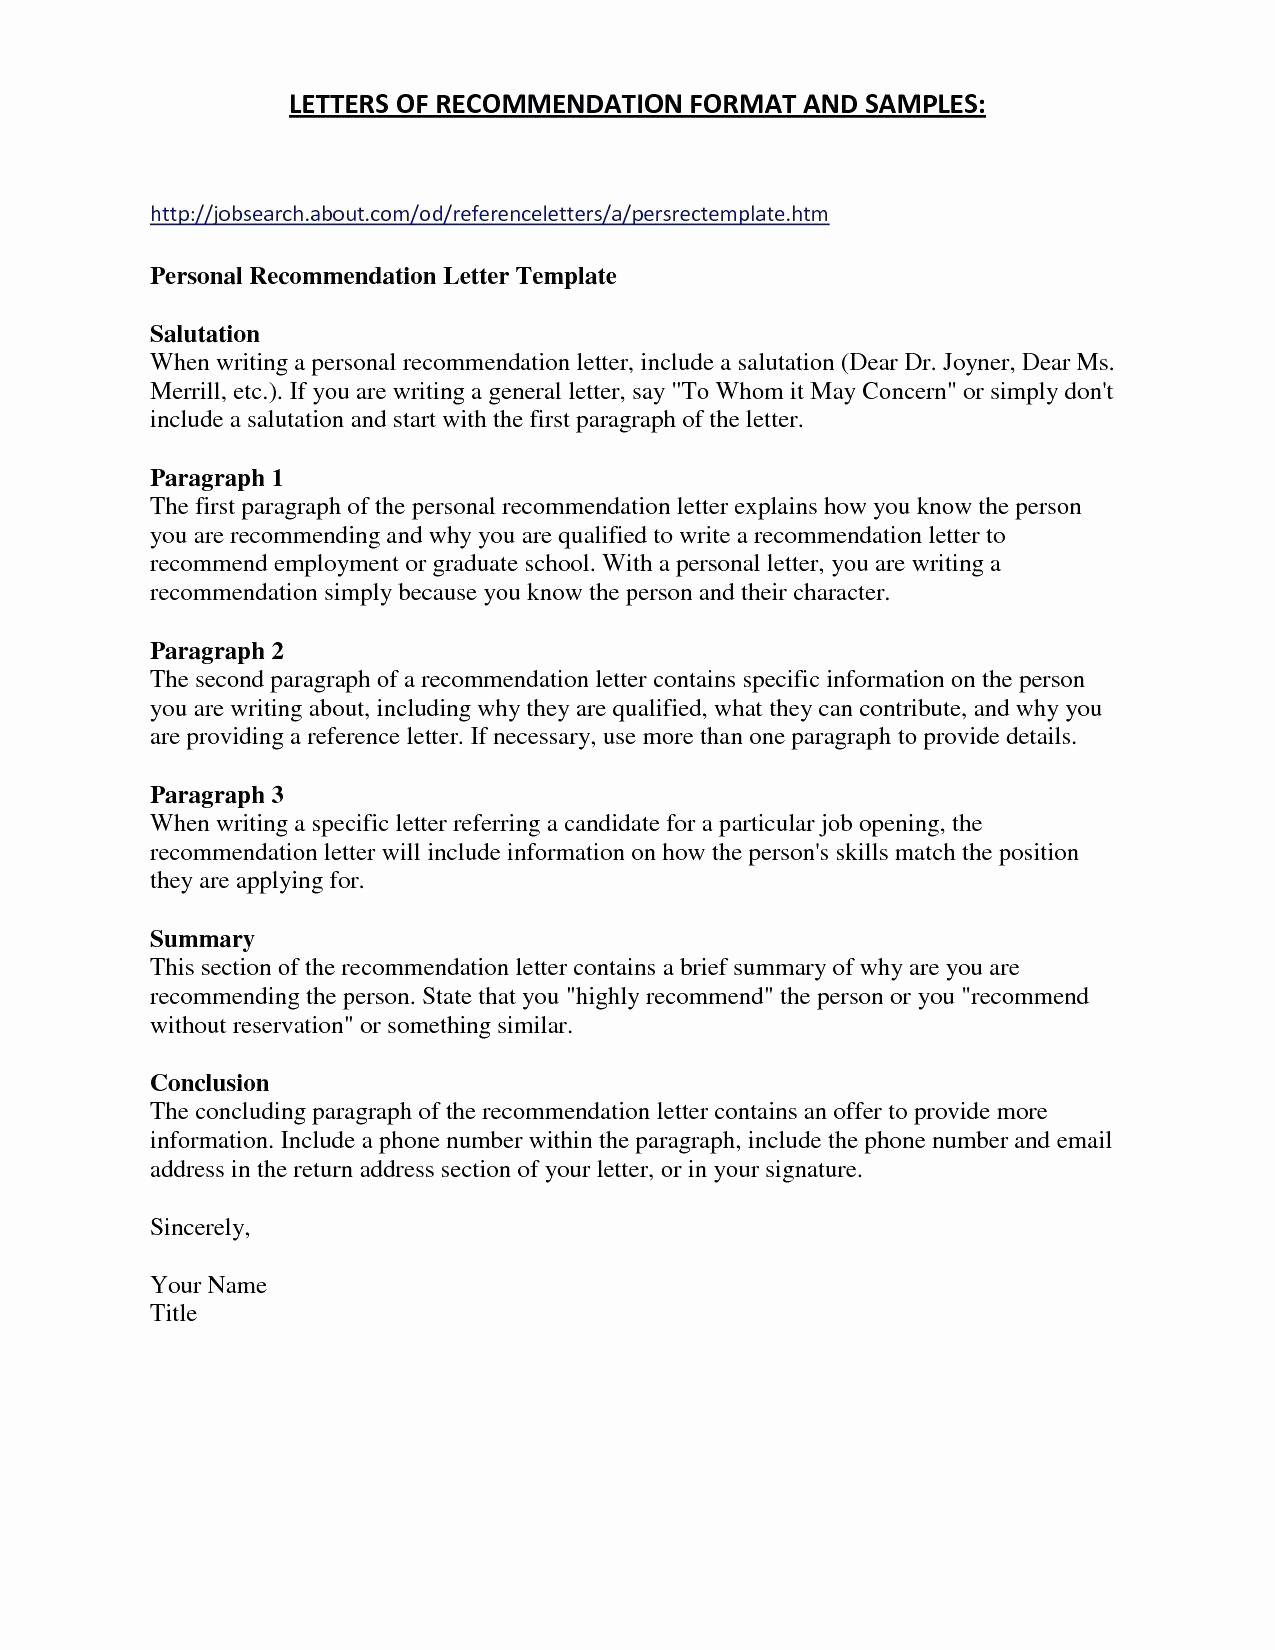 School Reference Letter Template - End Tenancy Letter Template From Landlord Fresh Template General